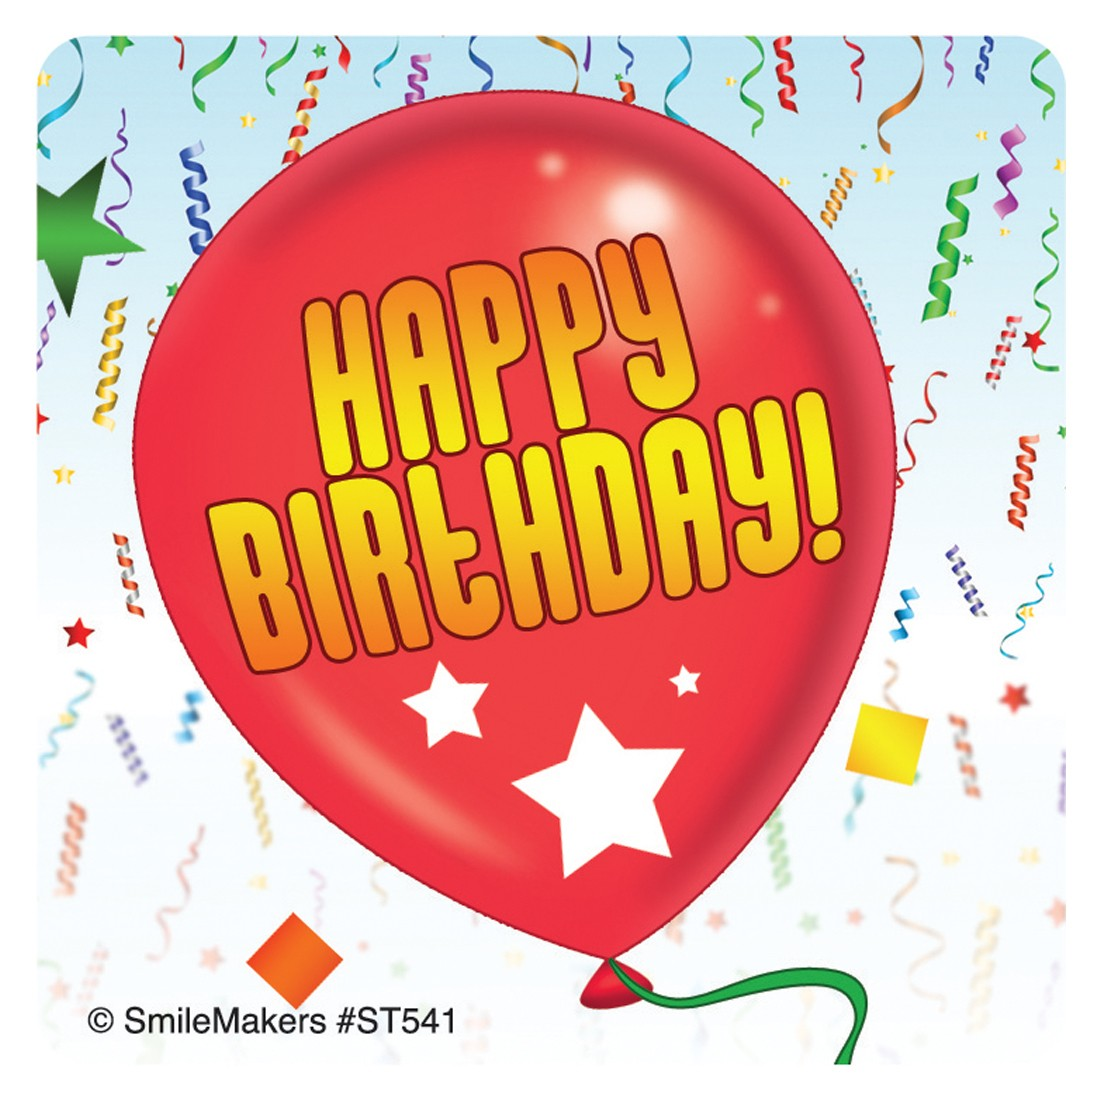 birthday stickers images ; ST541_2